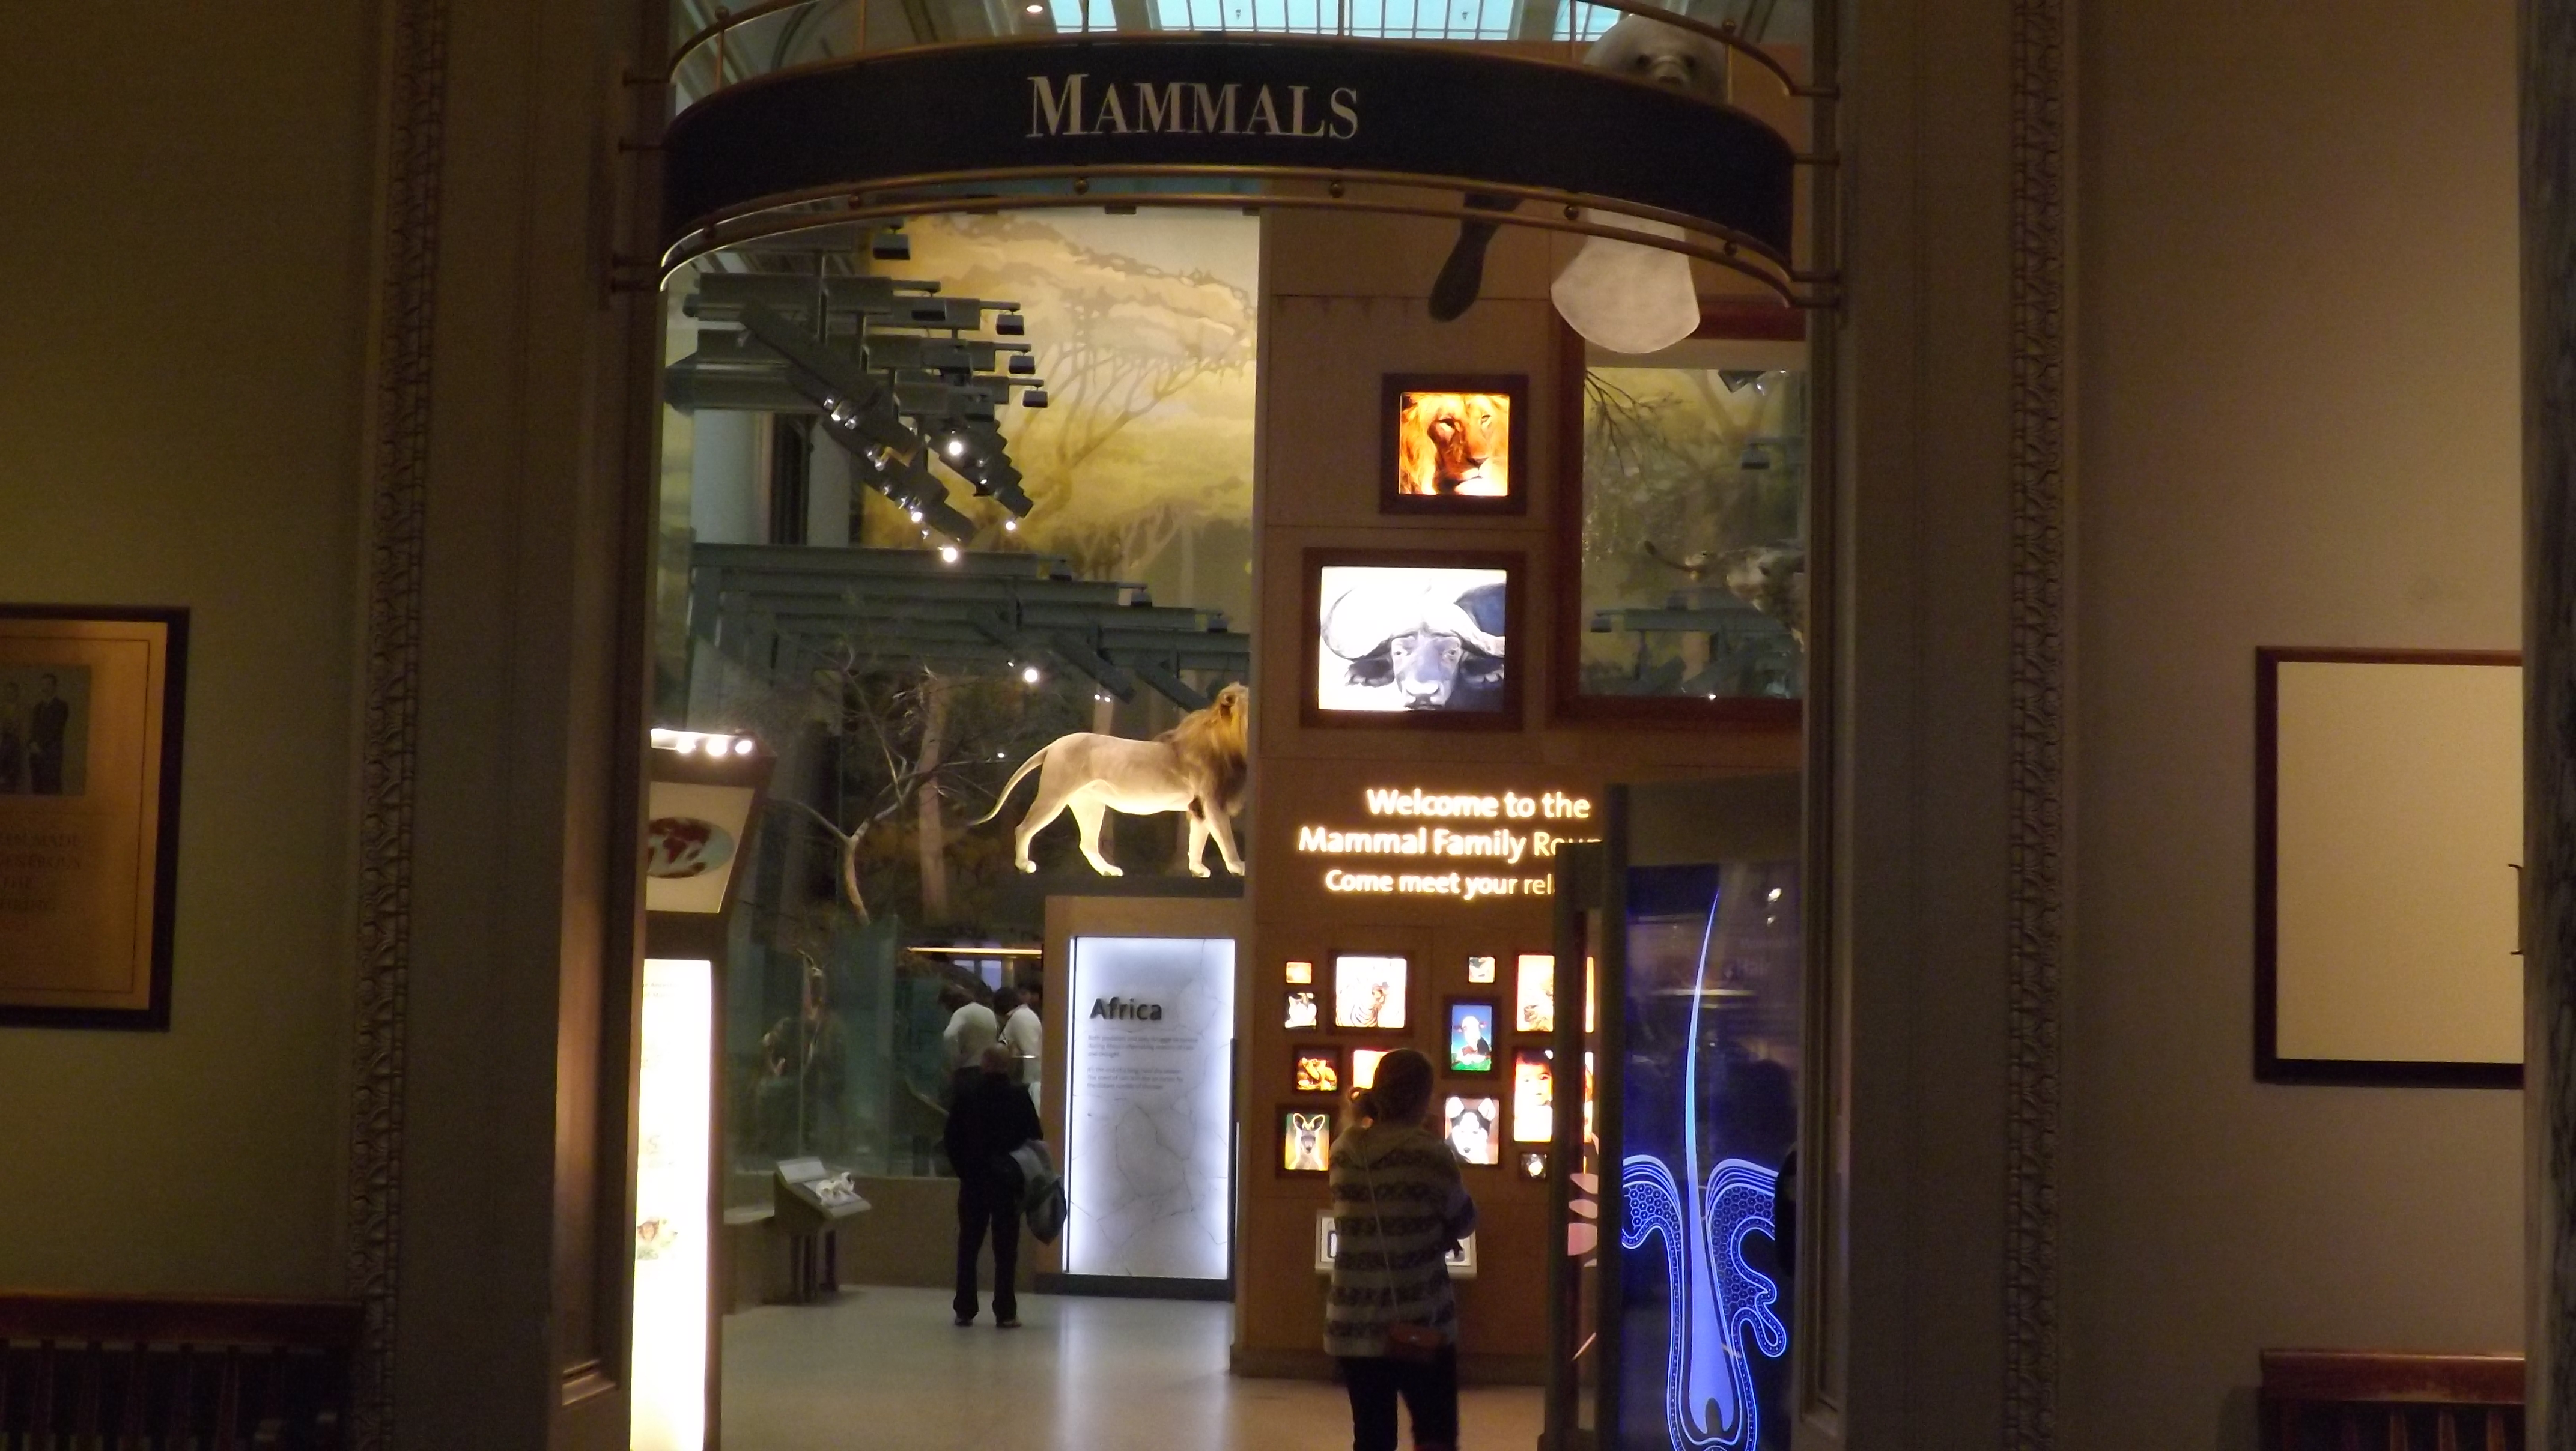 Figure 5. The Smithsonian Institution's Museum of Natural History, Mammals exhibition. 2014.